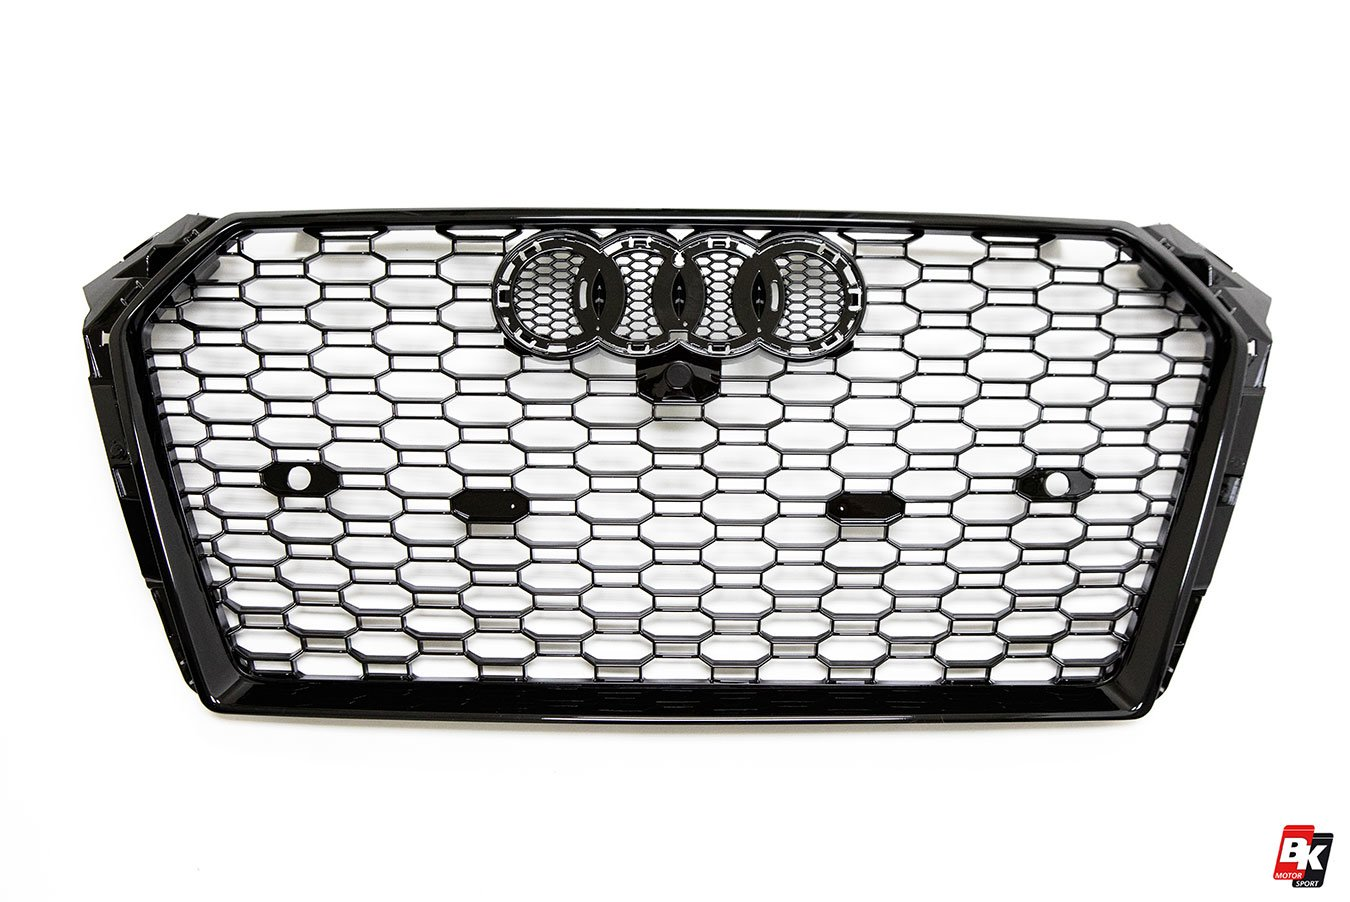 BKM Front Bumper Kit with Front Grille and Rear Diffuser (RS Style - Glossy Black), fits Audi A4 B9